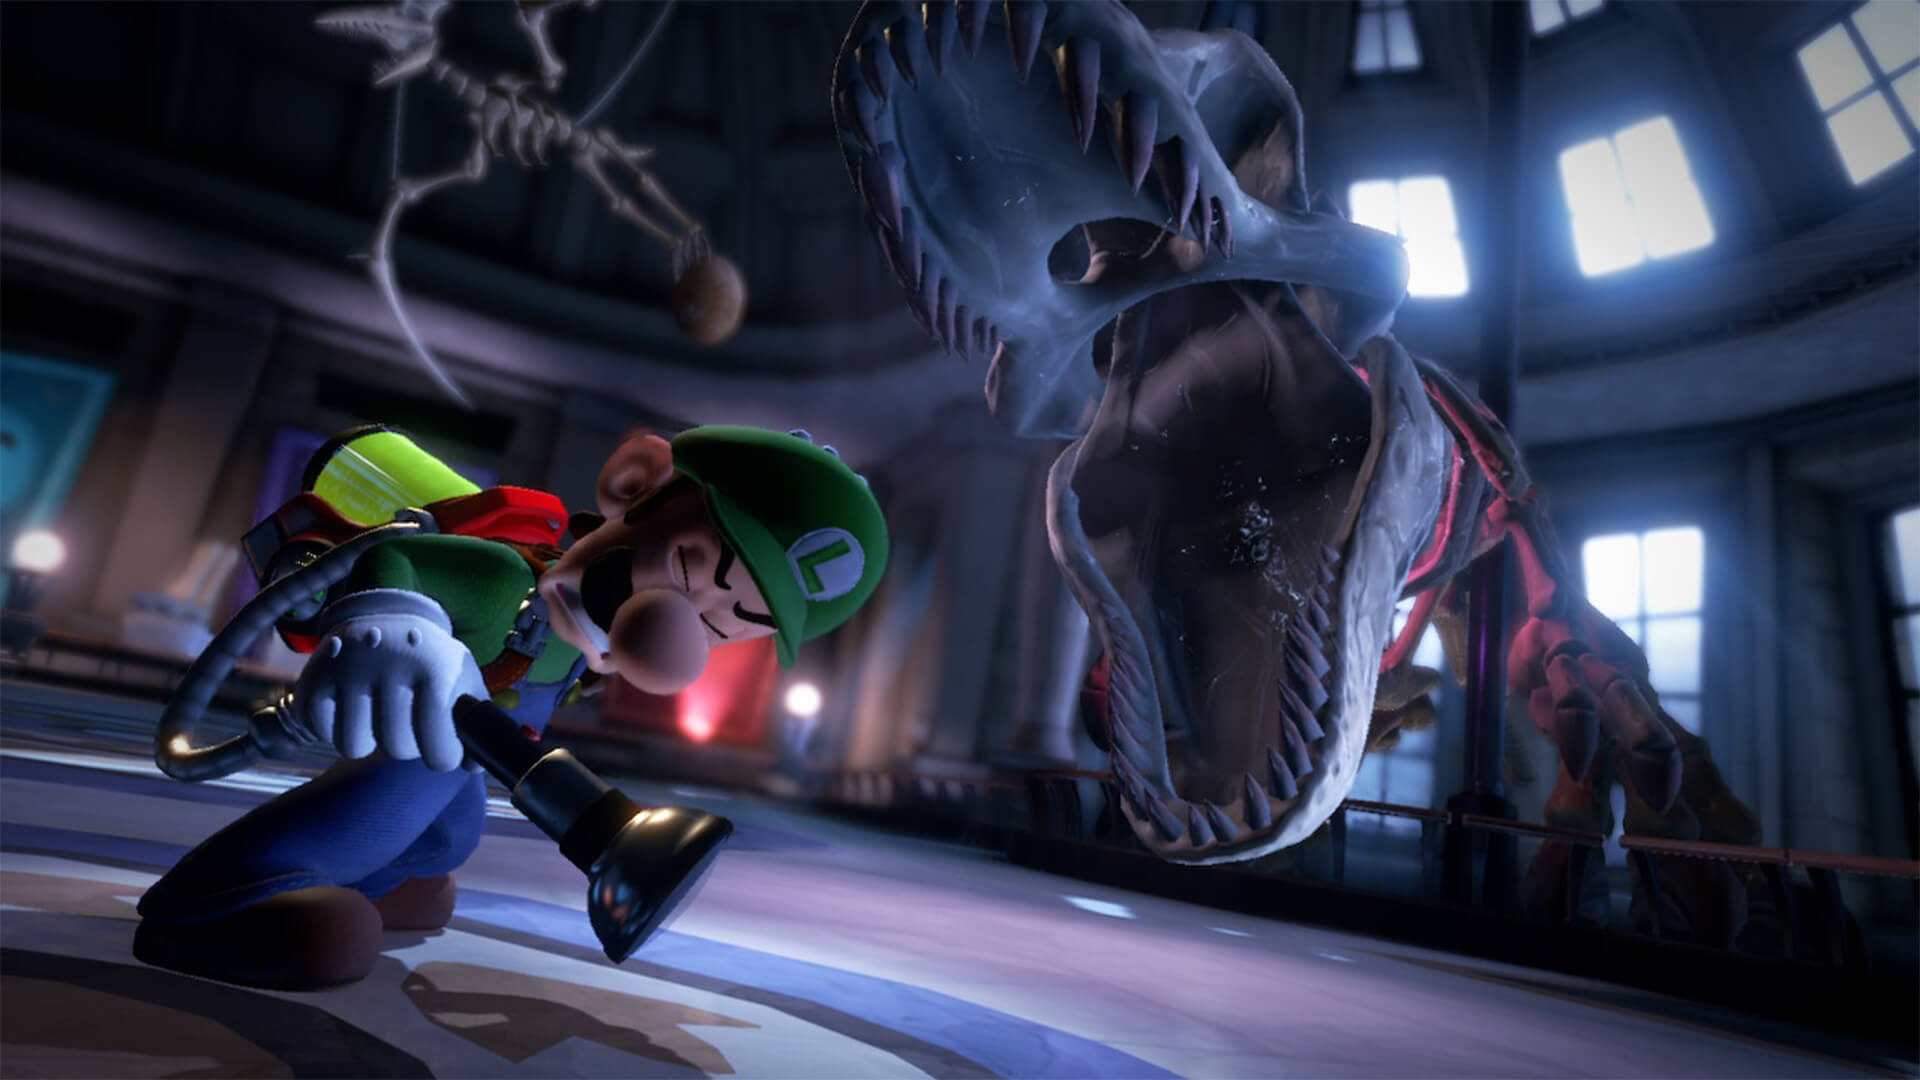 Luigi's Mansion 3 Review: A Haunting You Won't Forget